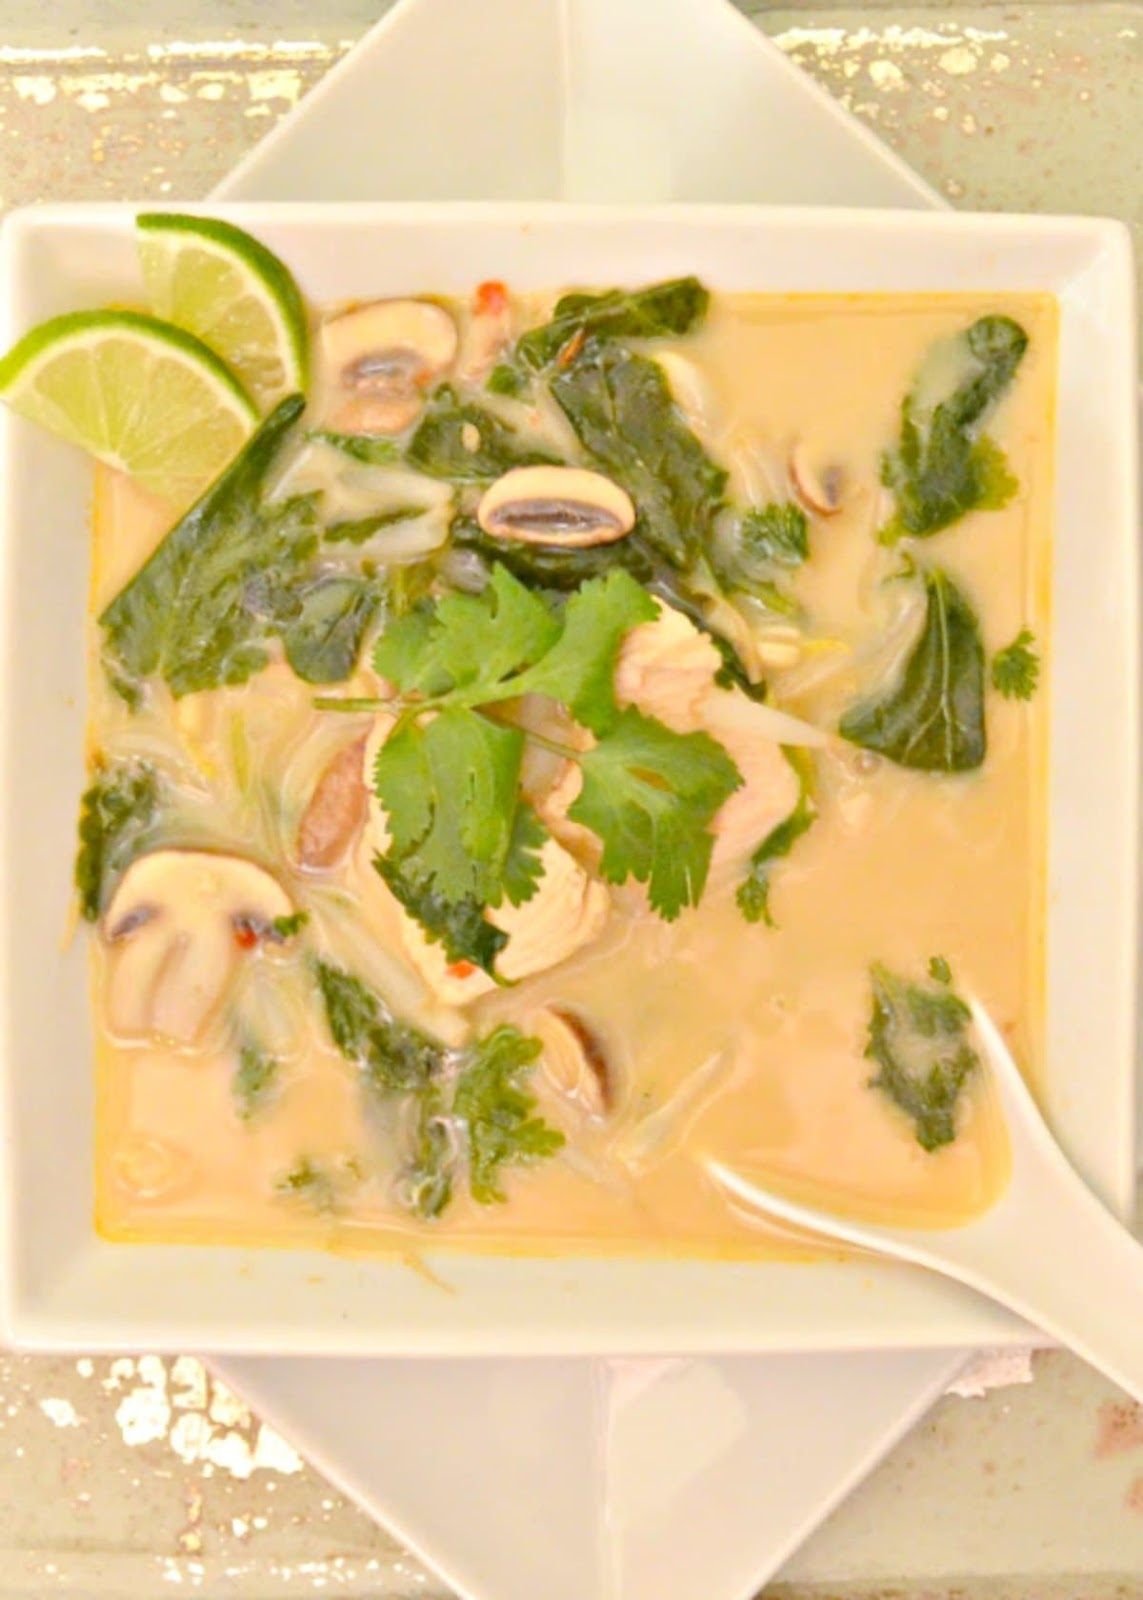 Thai Chicken Coconut Soup or Tom Kha Gai is a delicious Thai Soup recipe our family loves that is easy to make from Serena Bakes Simply From Scratch.